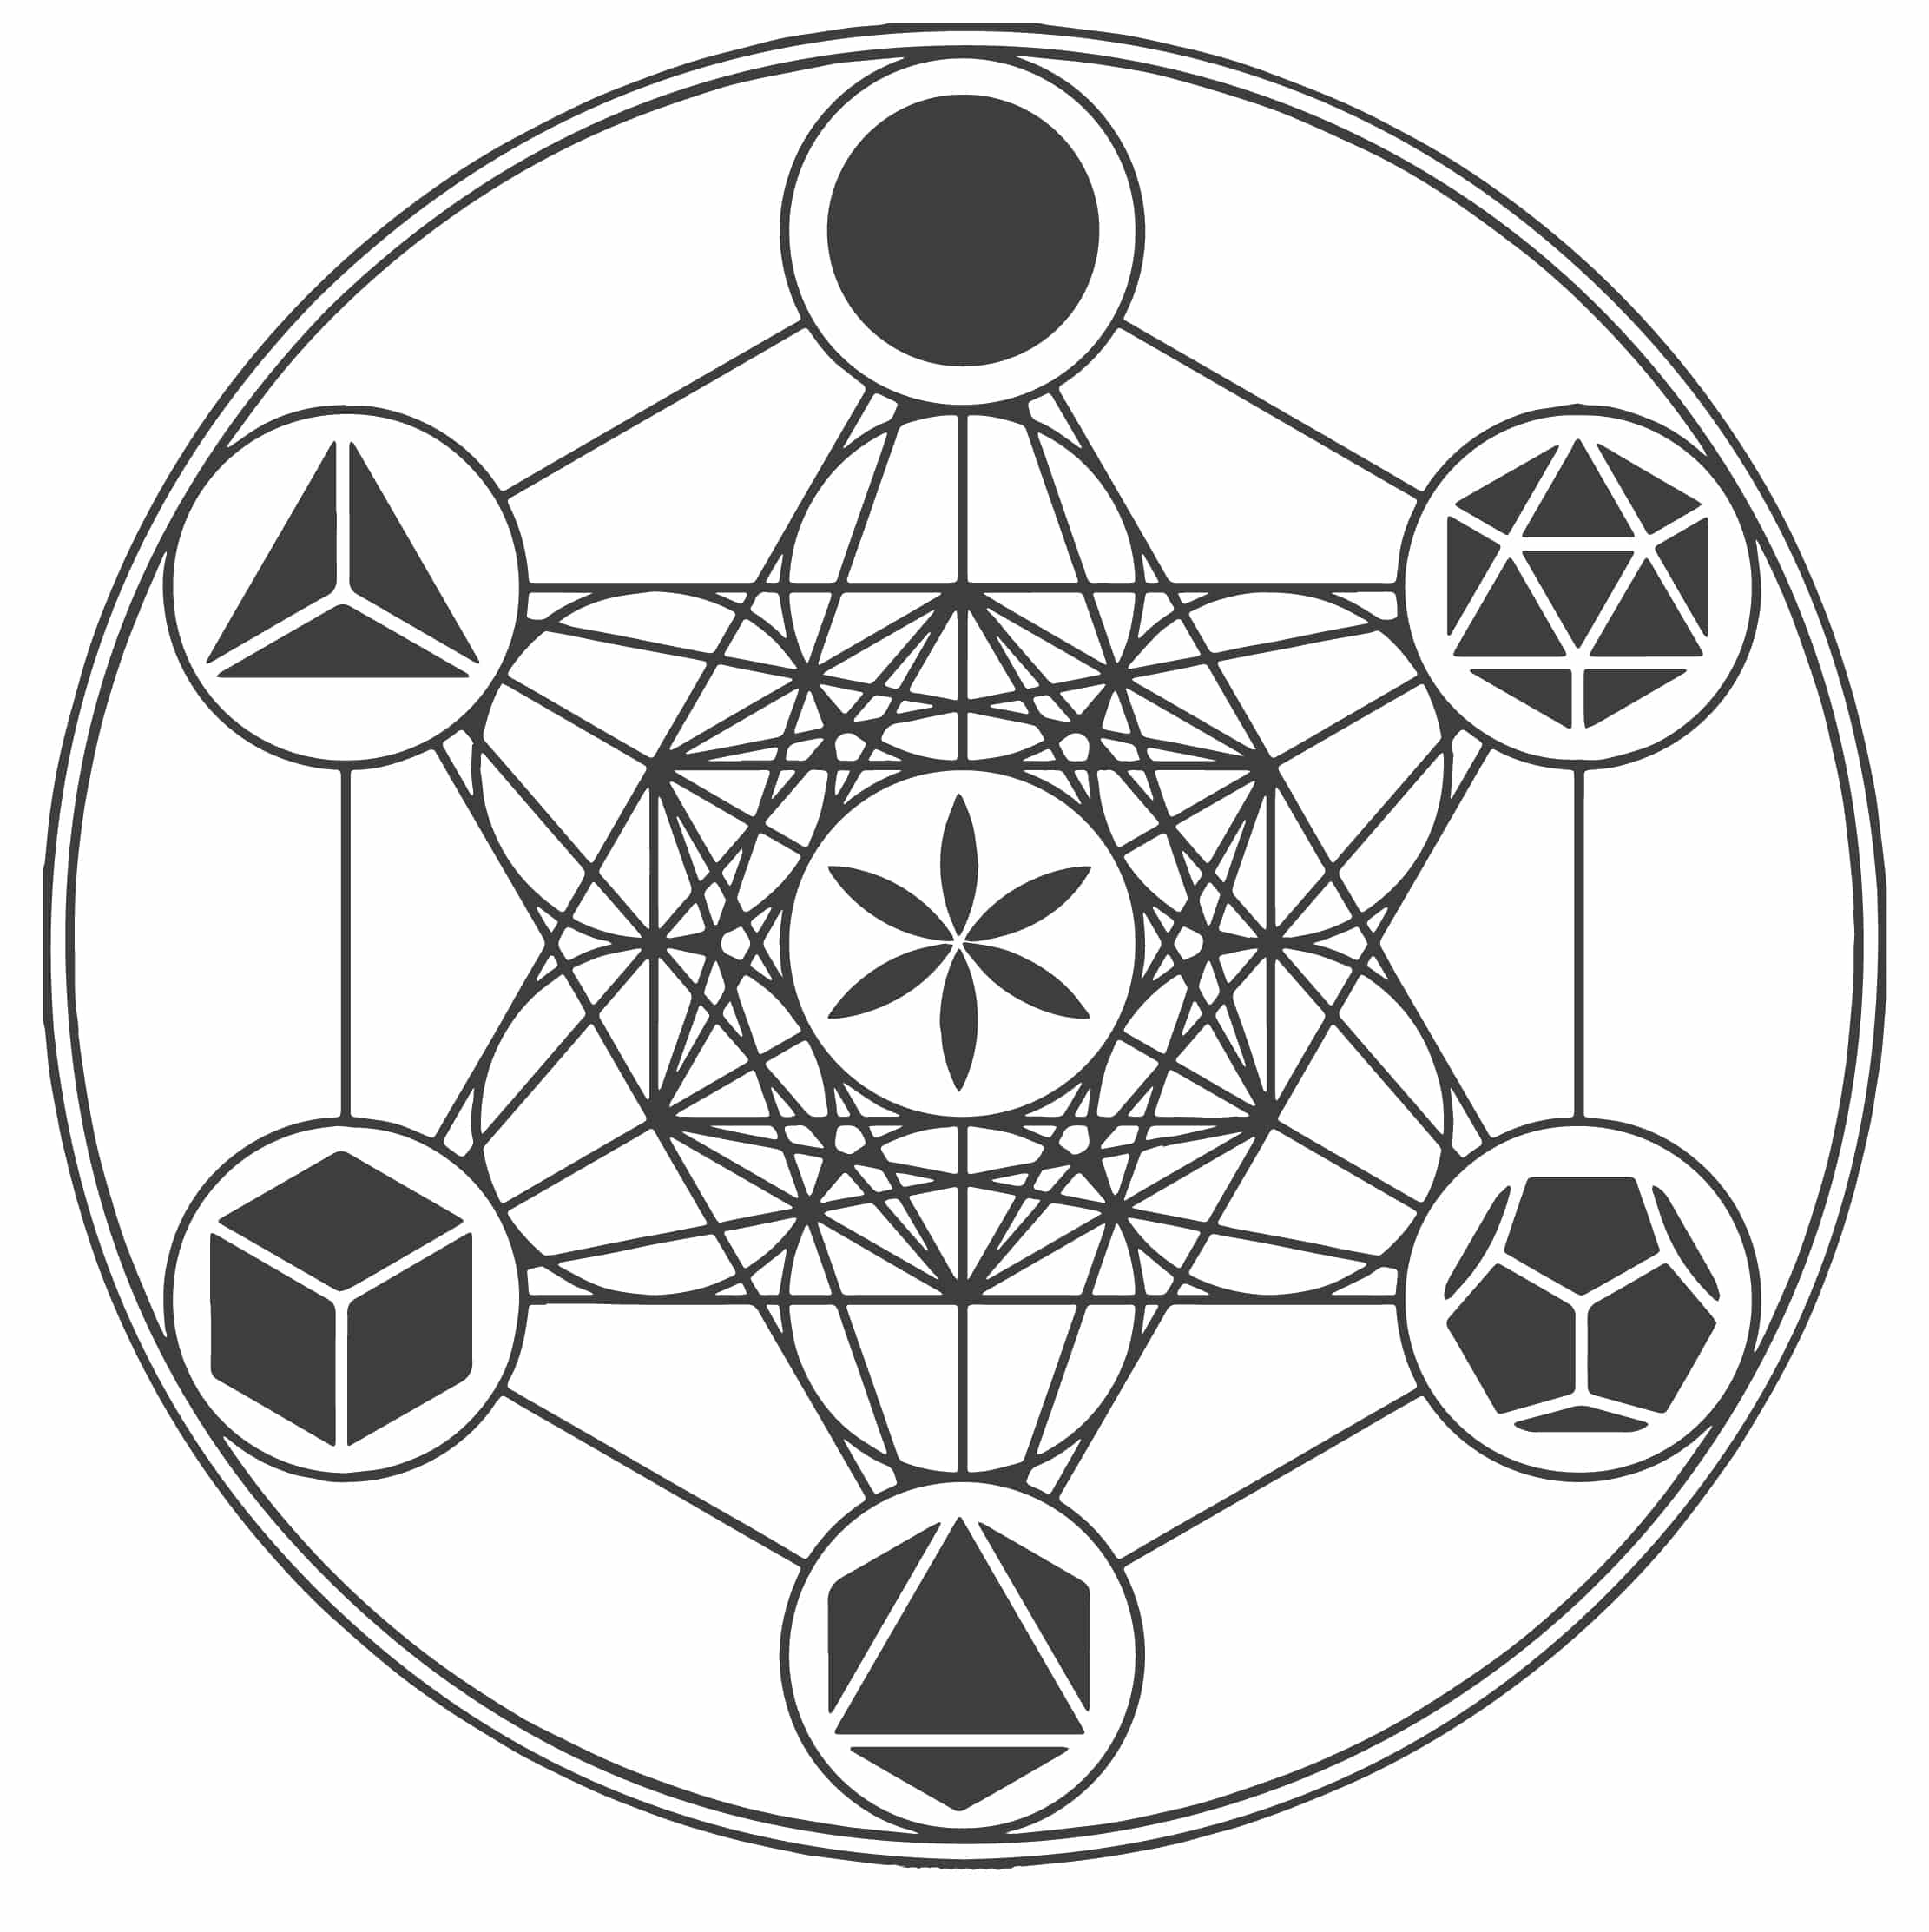 Metatron's Cube Symbol, Its Origins and Meaning